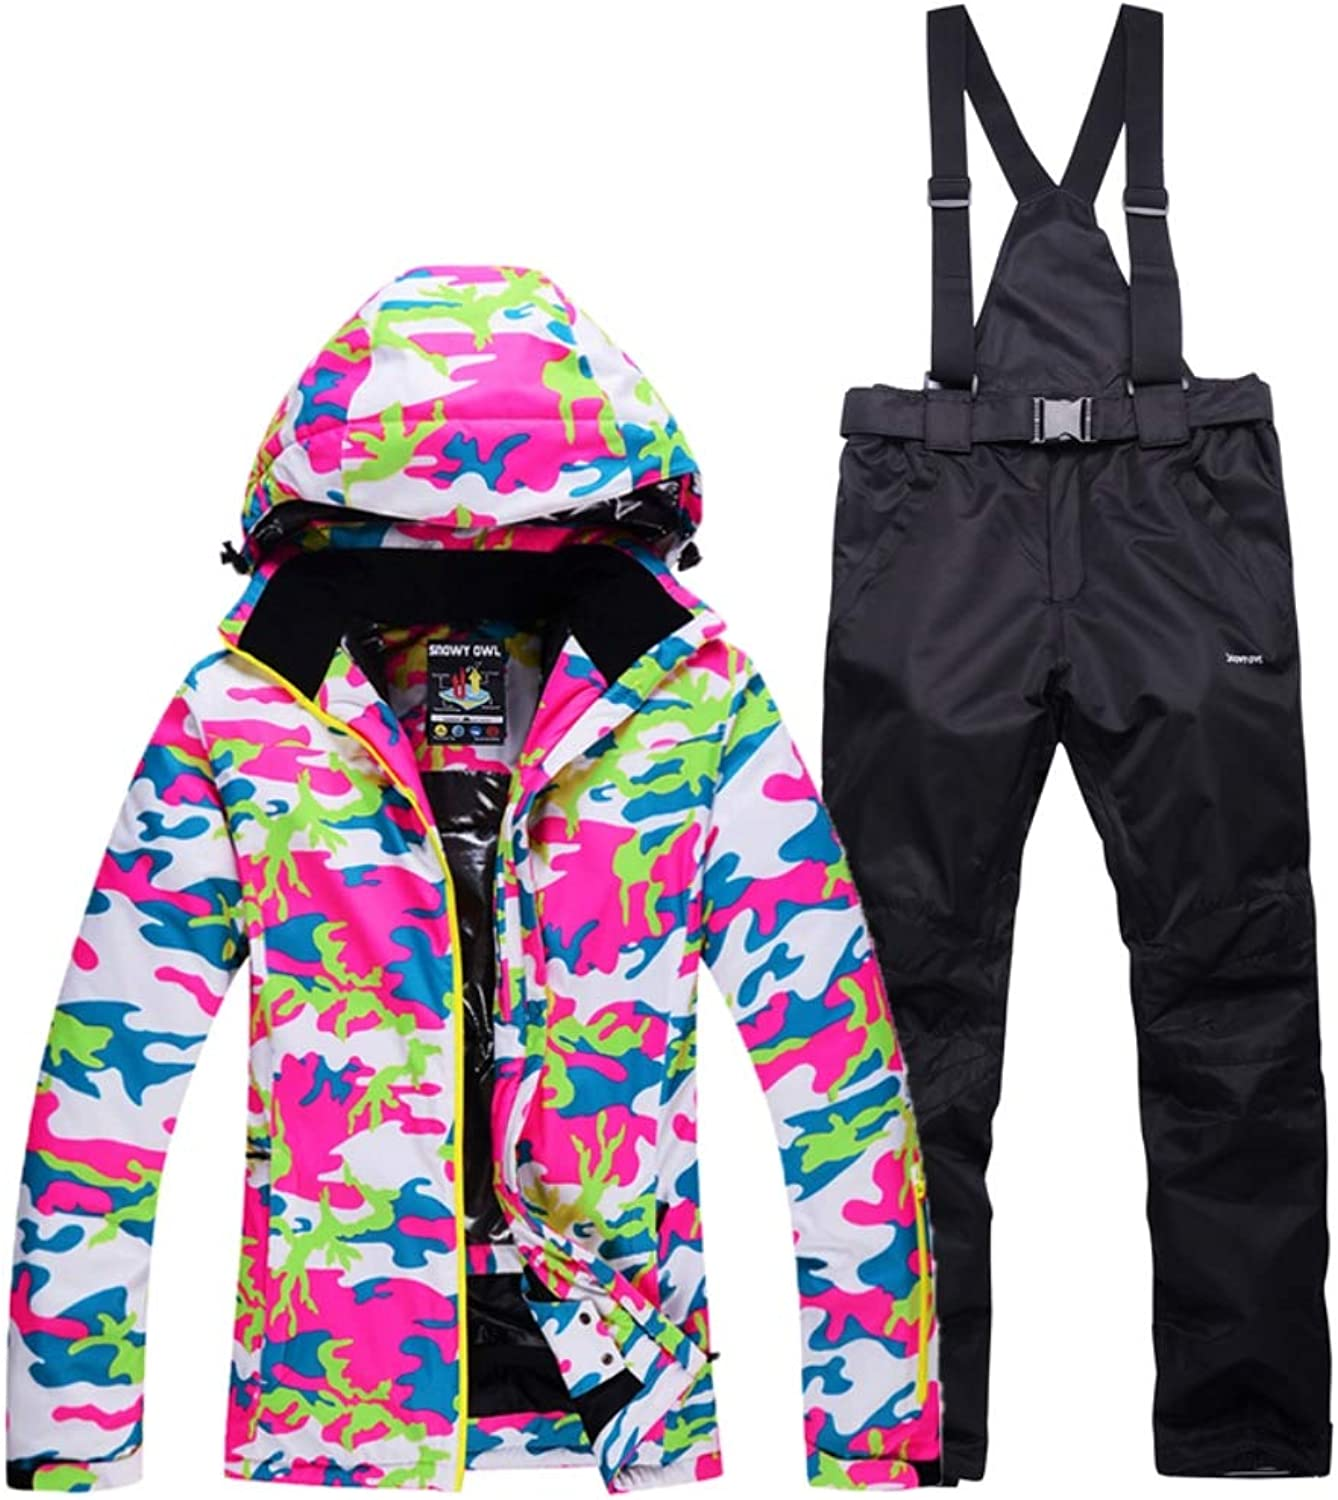 Women's Snow Suit, Double Board Snowboard Suit Windproof Waterproof Warm Breathable + Detachable hat Design + Trousers Strap Detachable, Quality Assurance